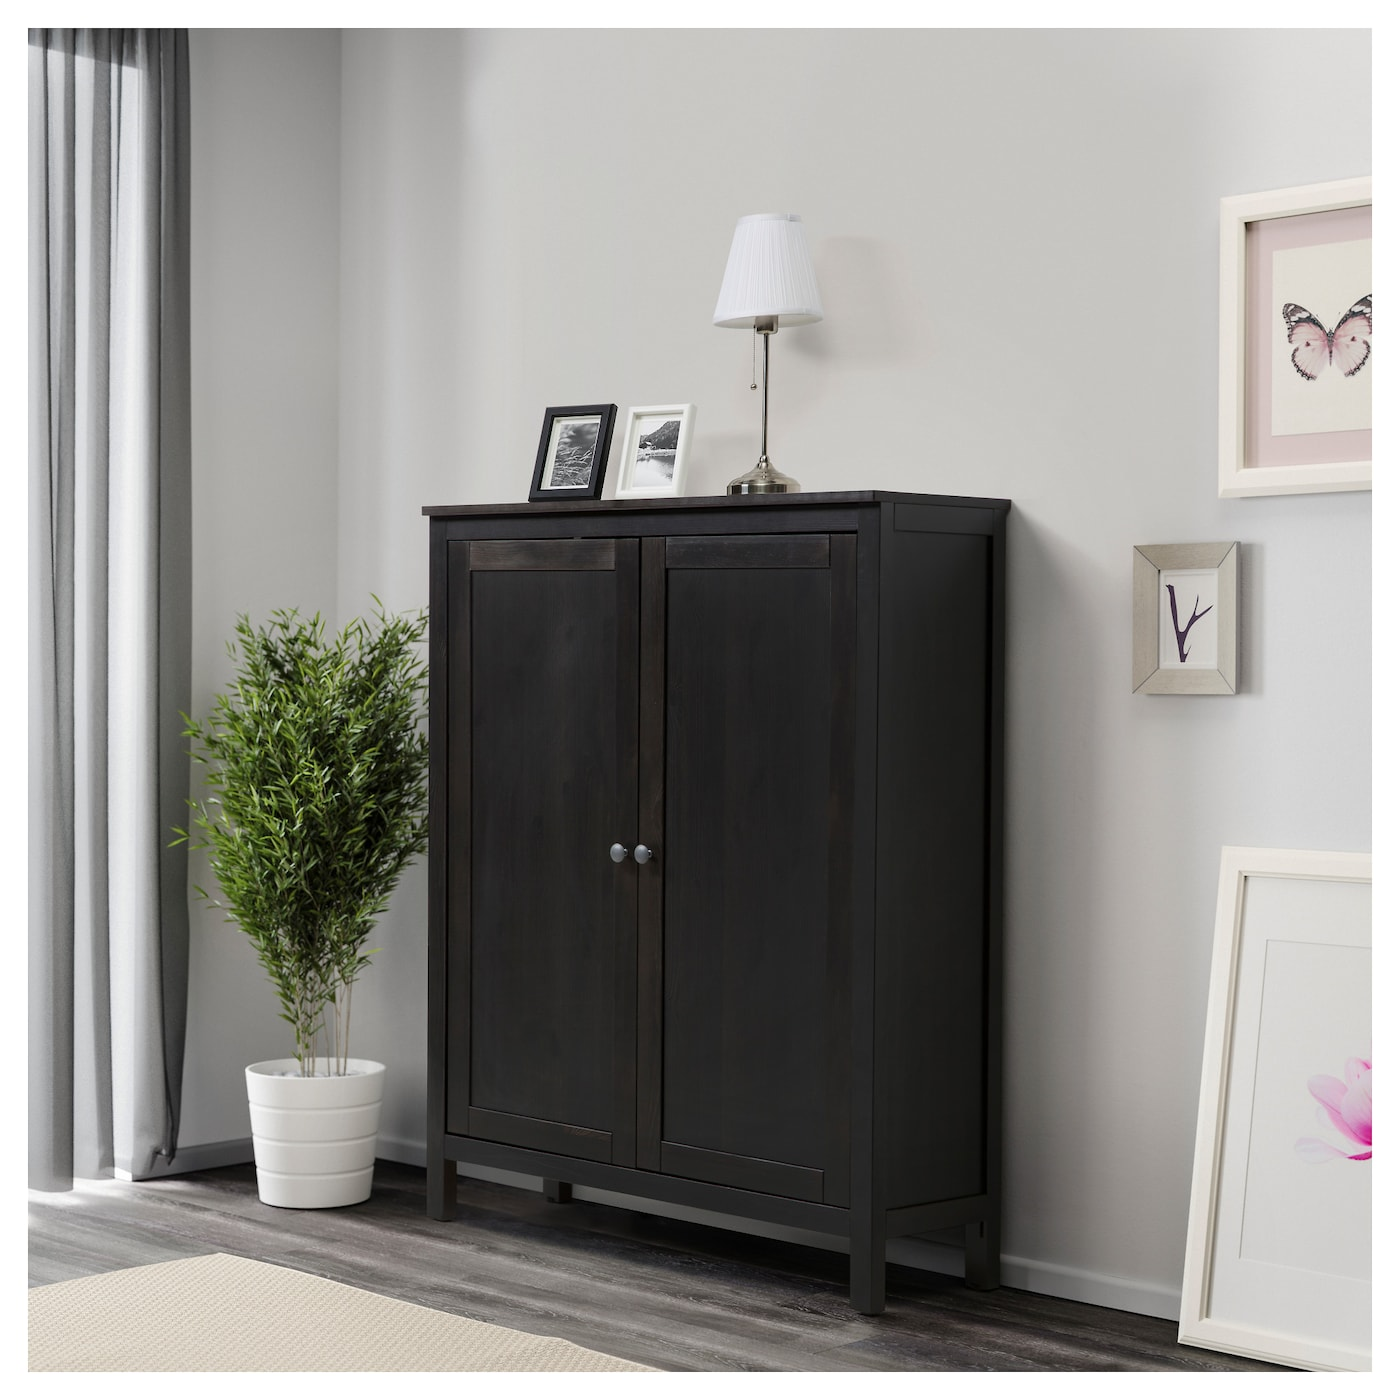 hemnes cabinet with 2 doors black brown 99x130 cm ikea. Black Bedroom Furniture Sets. Home Design Ideas